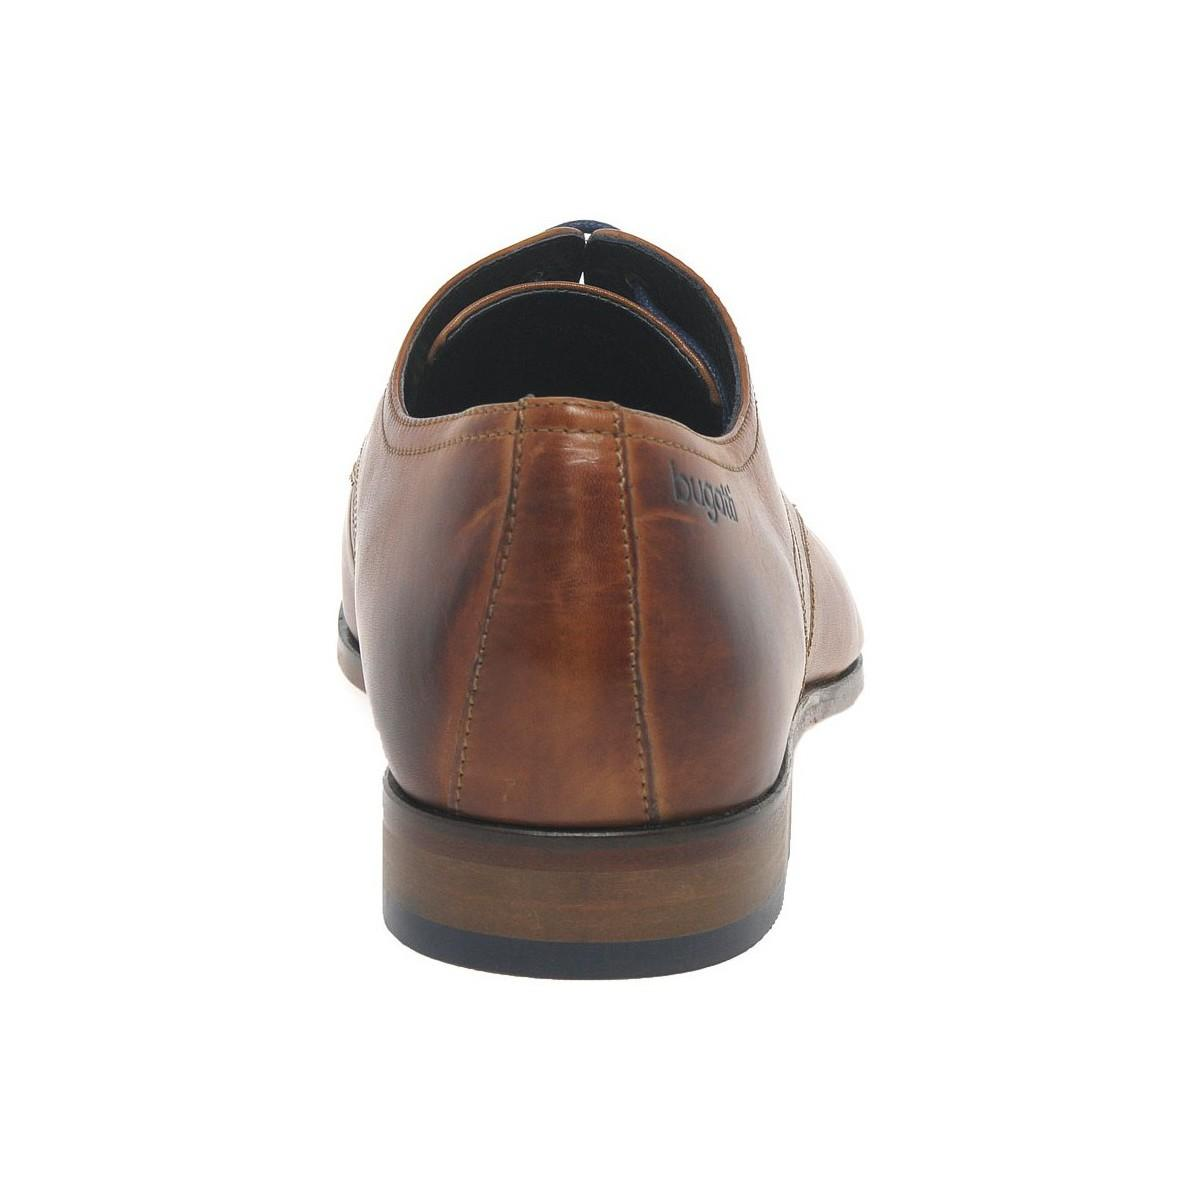 Bugatti Leather Rhine Mens Formal Shoes Men's Smart / Formal Shoes In Brown for Men